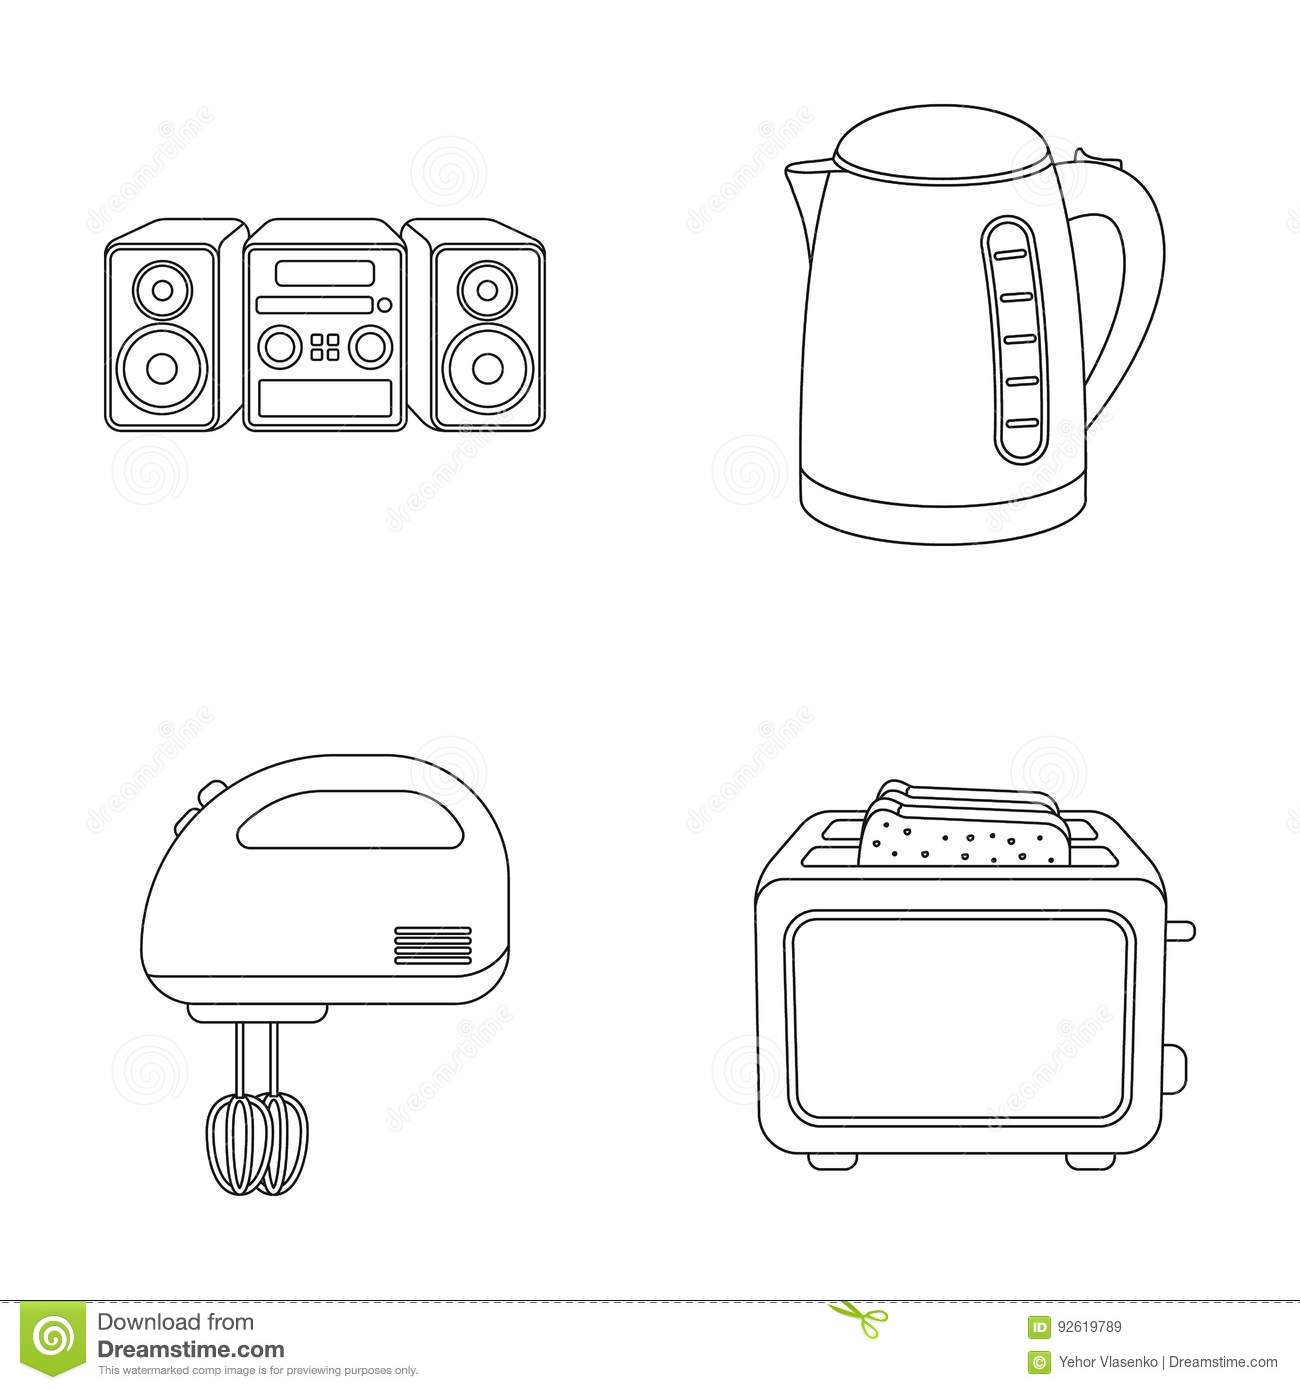 Electric Mixer Outline ~ Kettle cartoons illustrations vector stock images